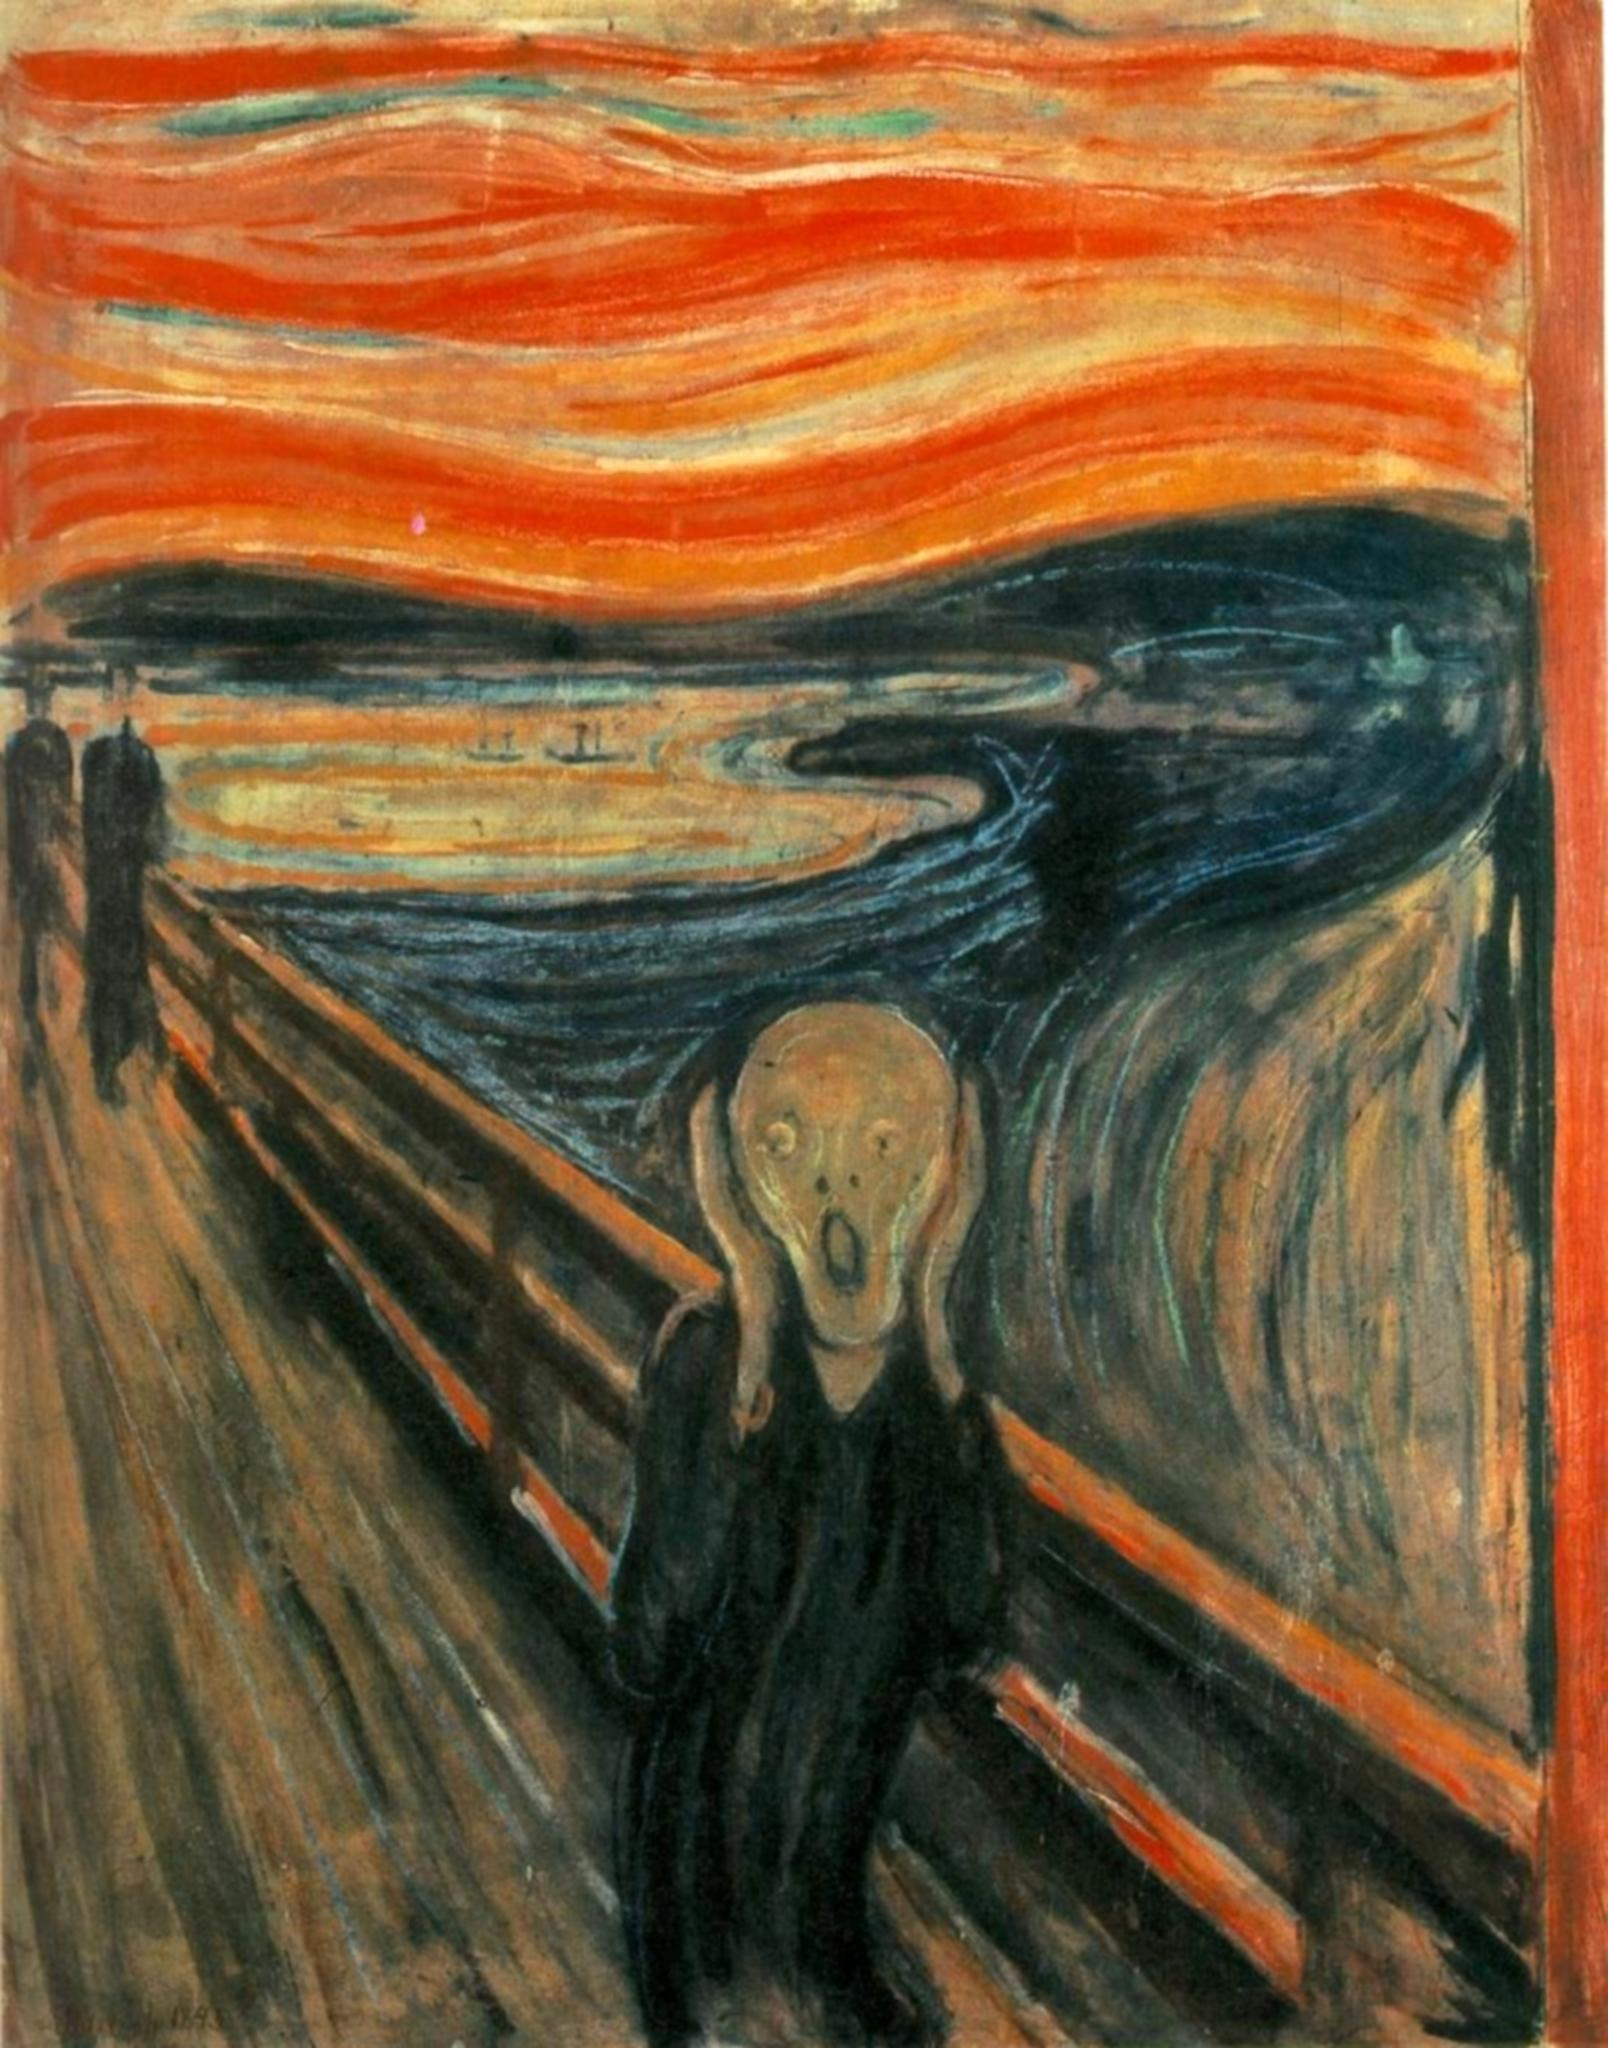 Edvard Munch's famous painting The Scream was inspired by vivid red sunsets caused by a volcanic eruption.